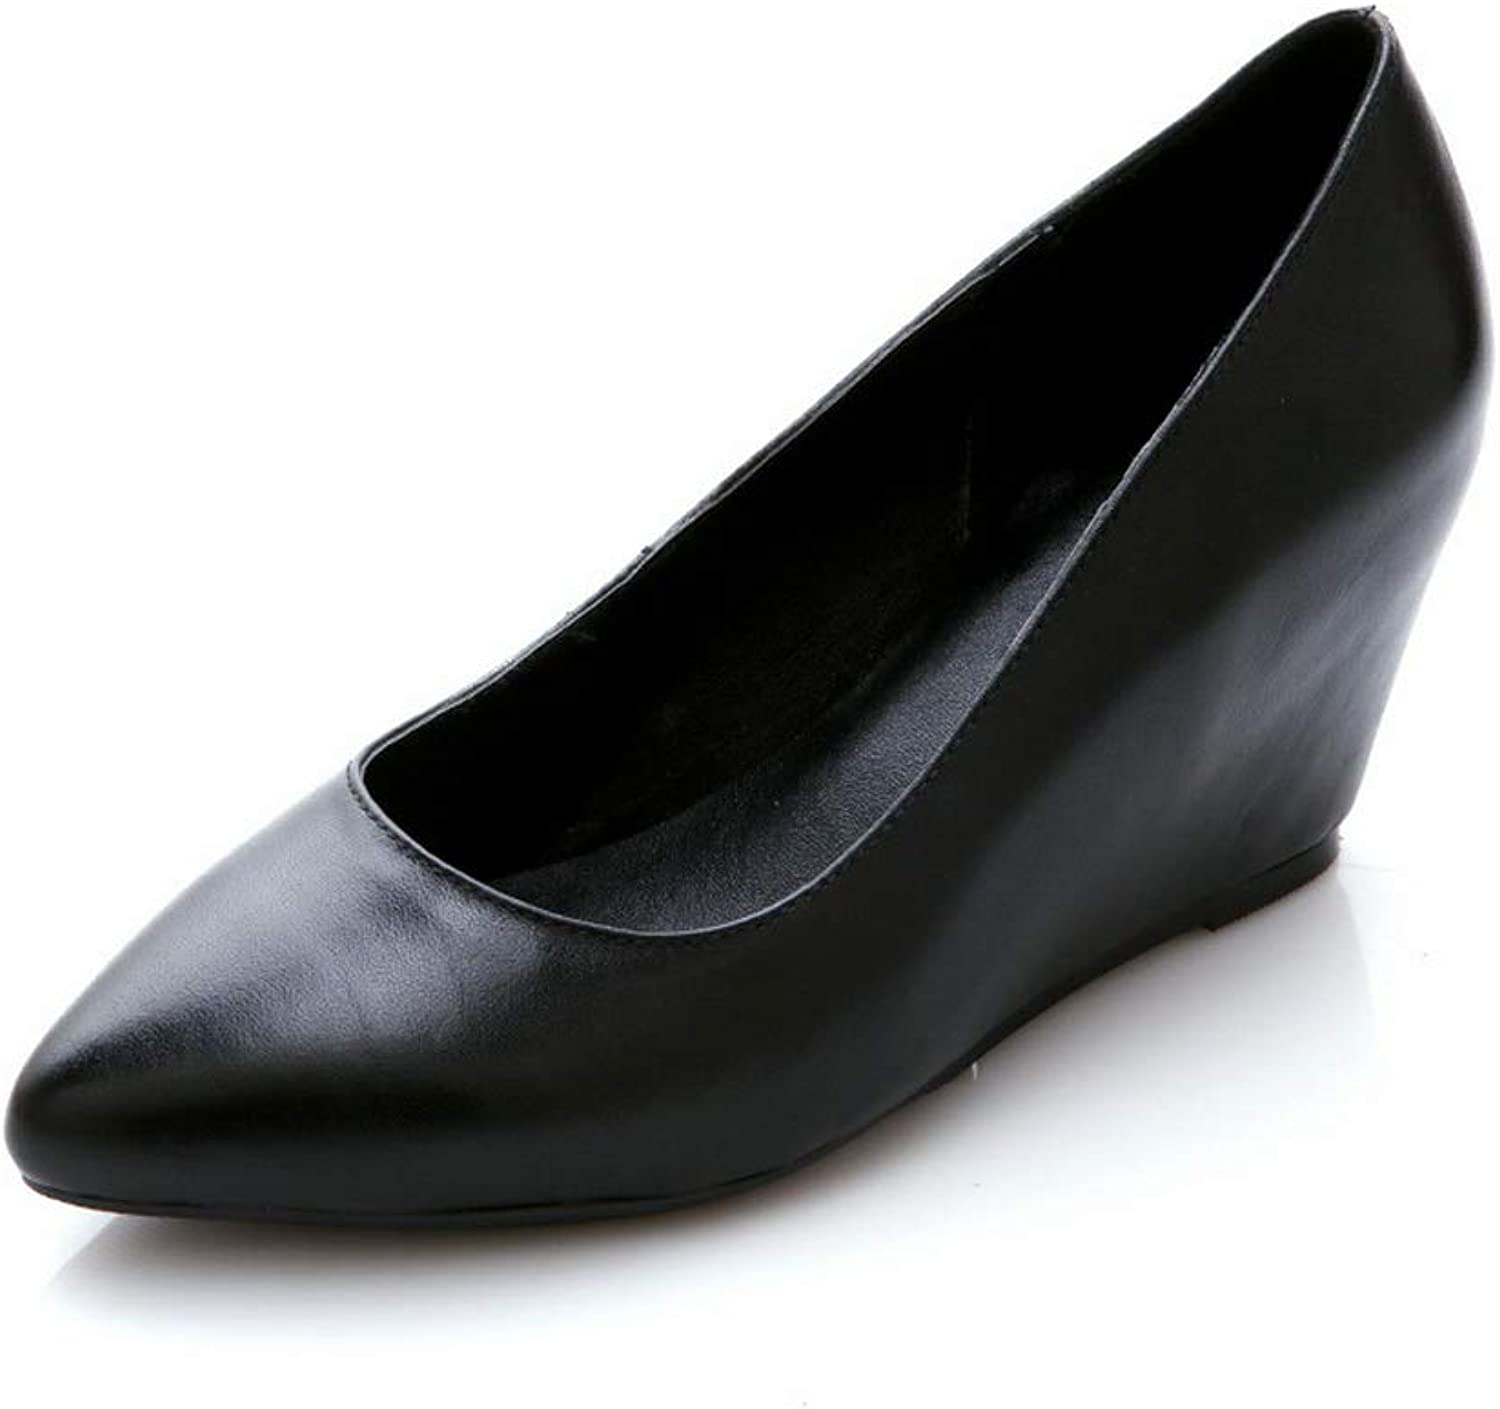 AN Womens Wedges Pointed-Toe Cow Leather Pumps shoes DGU00883